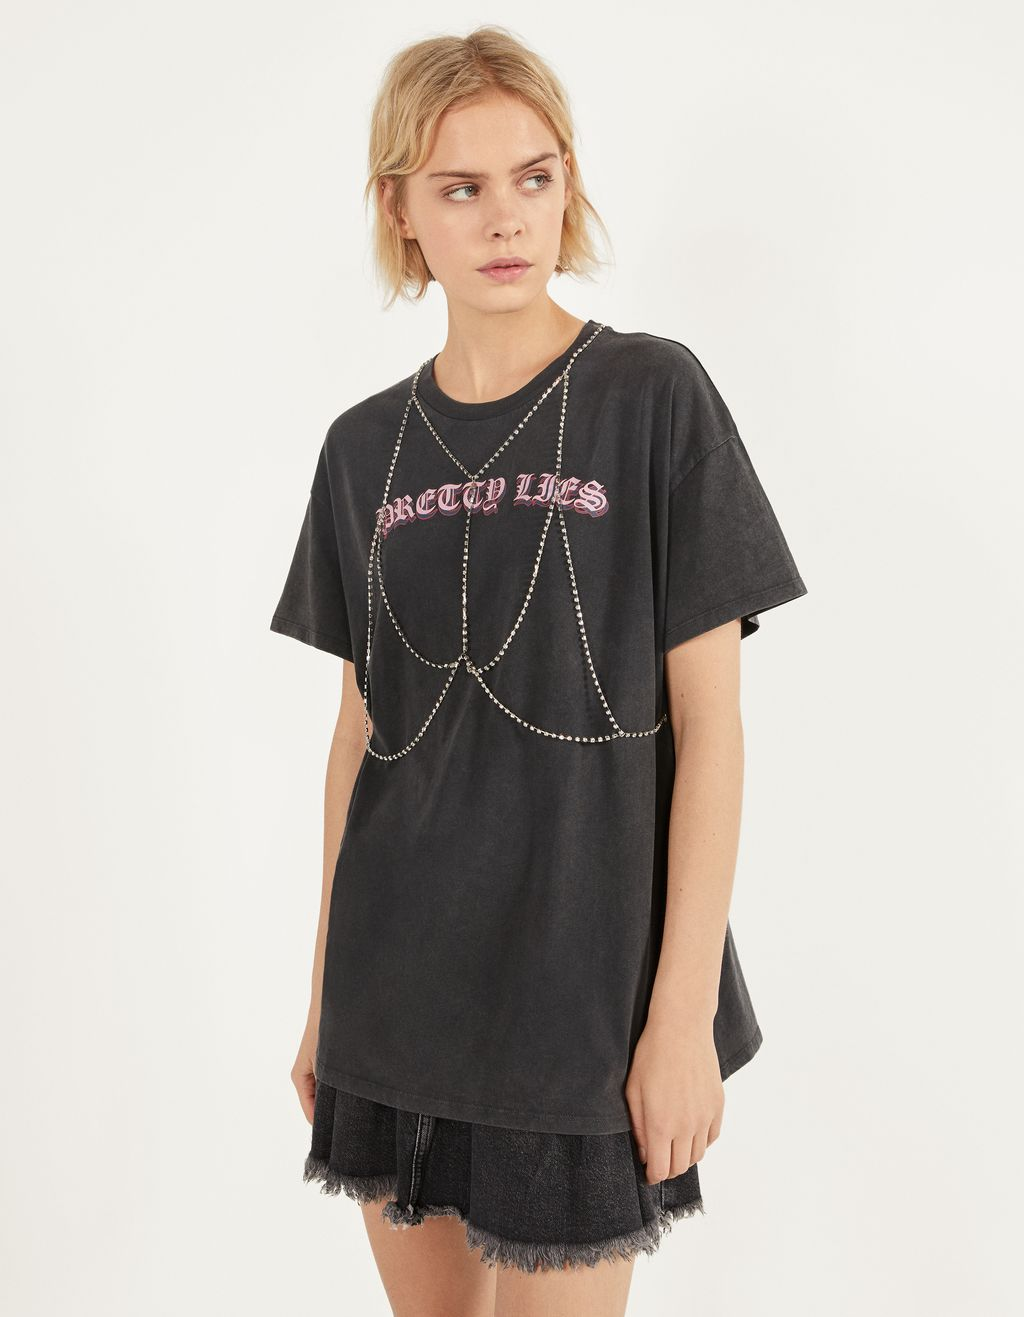 Printed T-shirt with chain